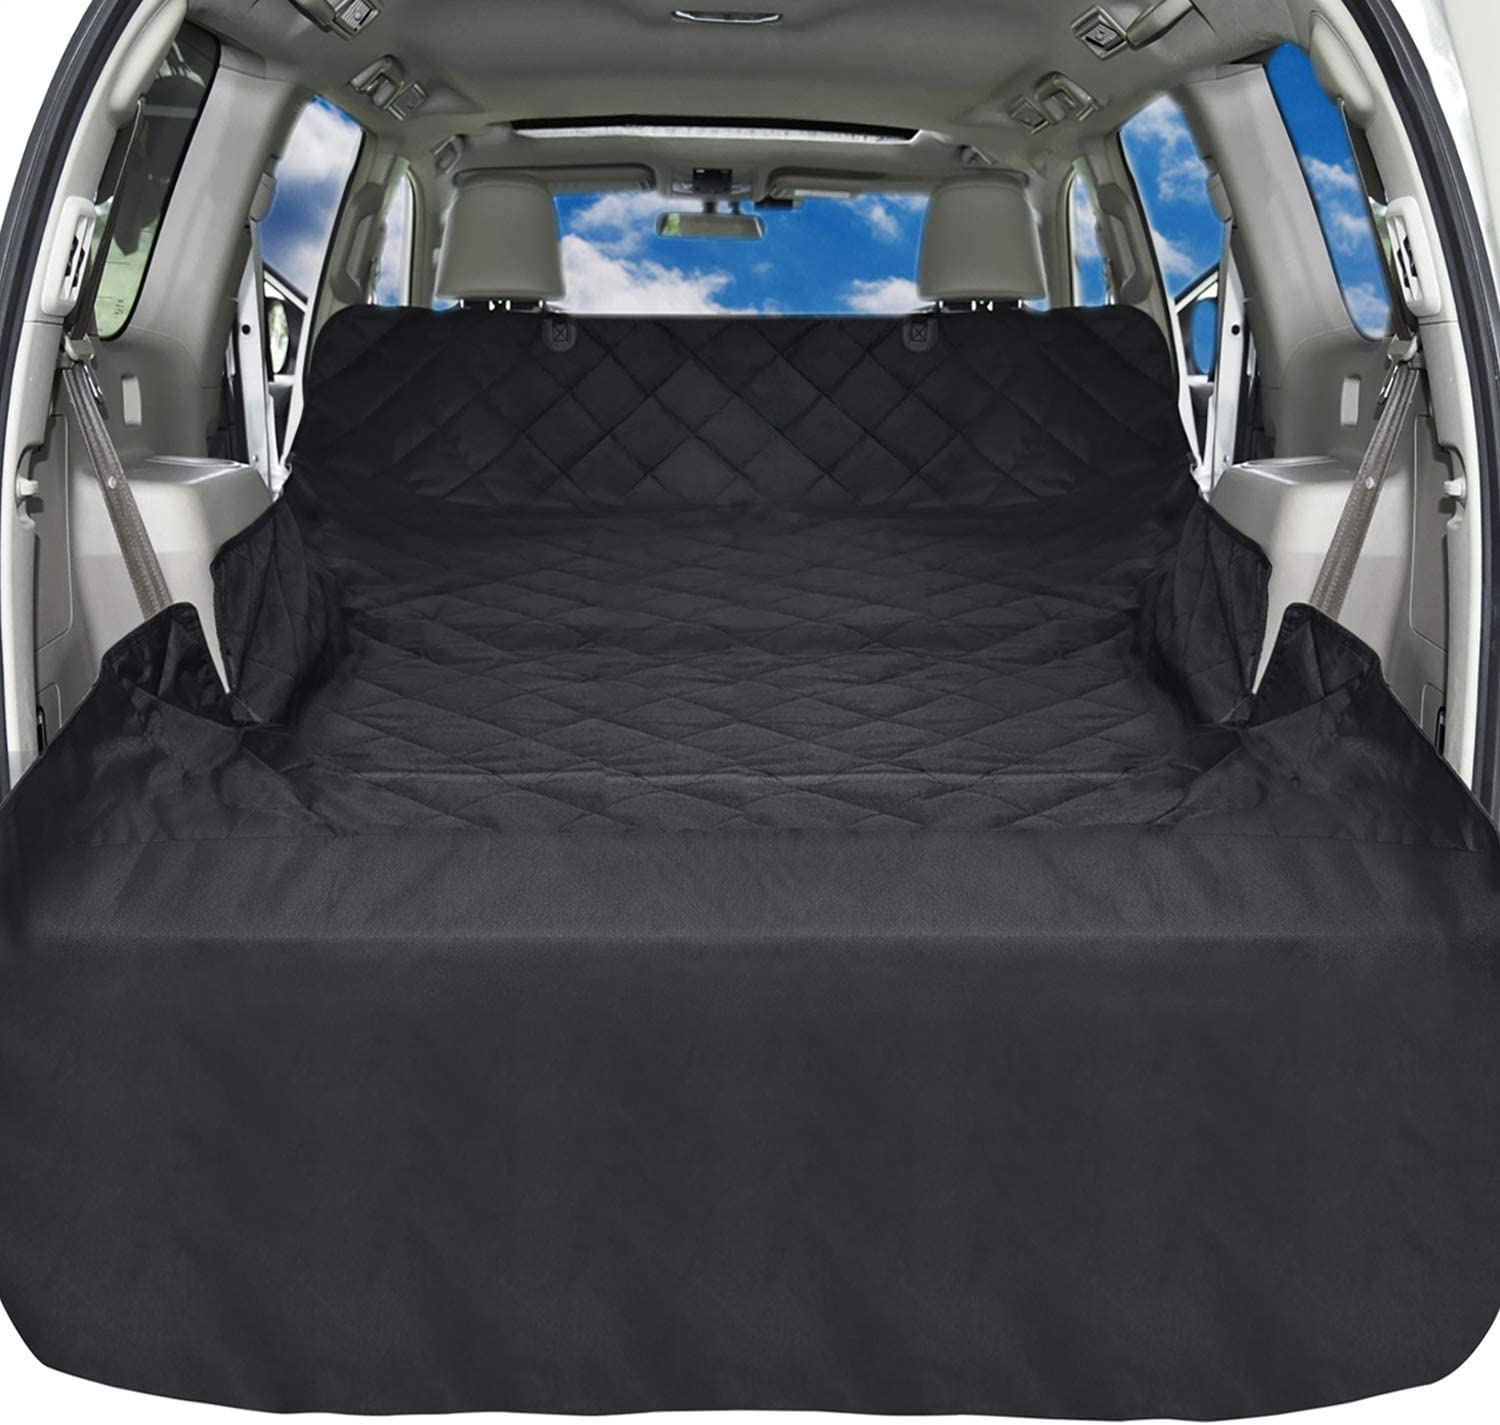 iSPECLE SUV Cargo Liner for Dogs, Non Slip Pet Car Seat Cover with Anchors for Stable Fit – Waterproof Cargo Liner Cover for SUVs and Cars Universal Fit for All Cars, Sedan, Wagon Mini Van, Black